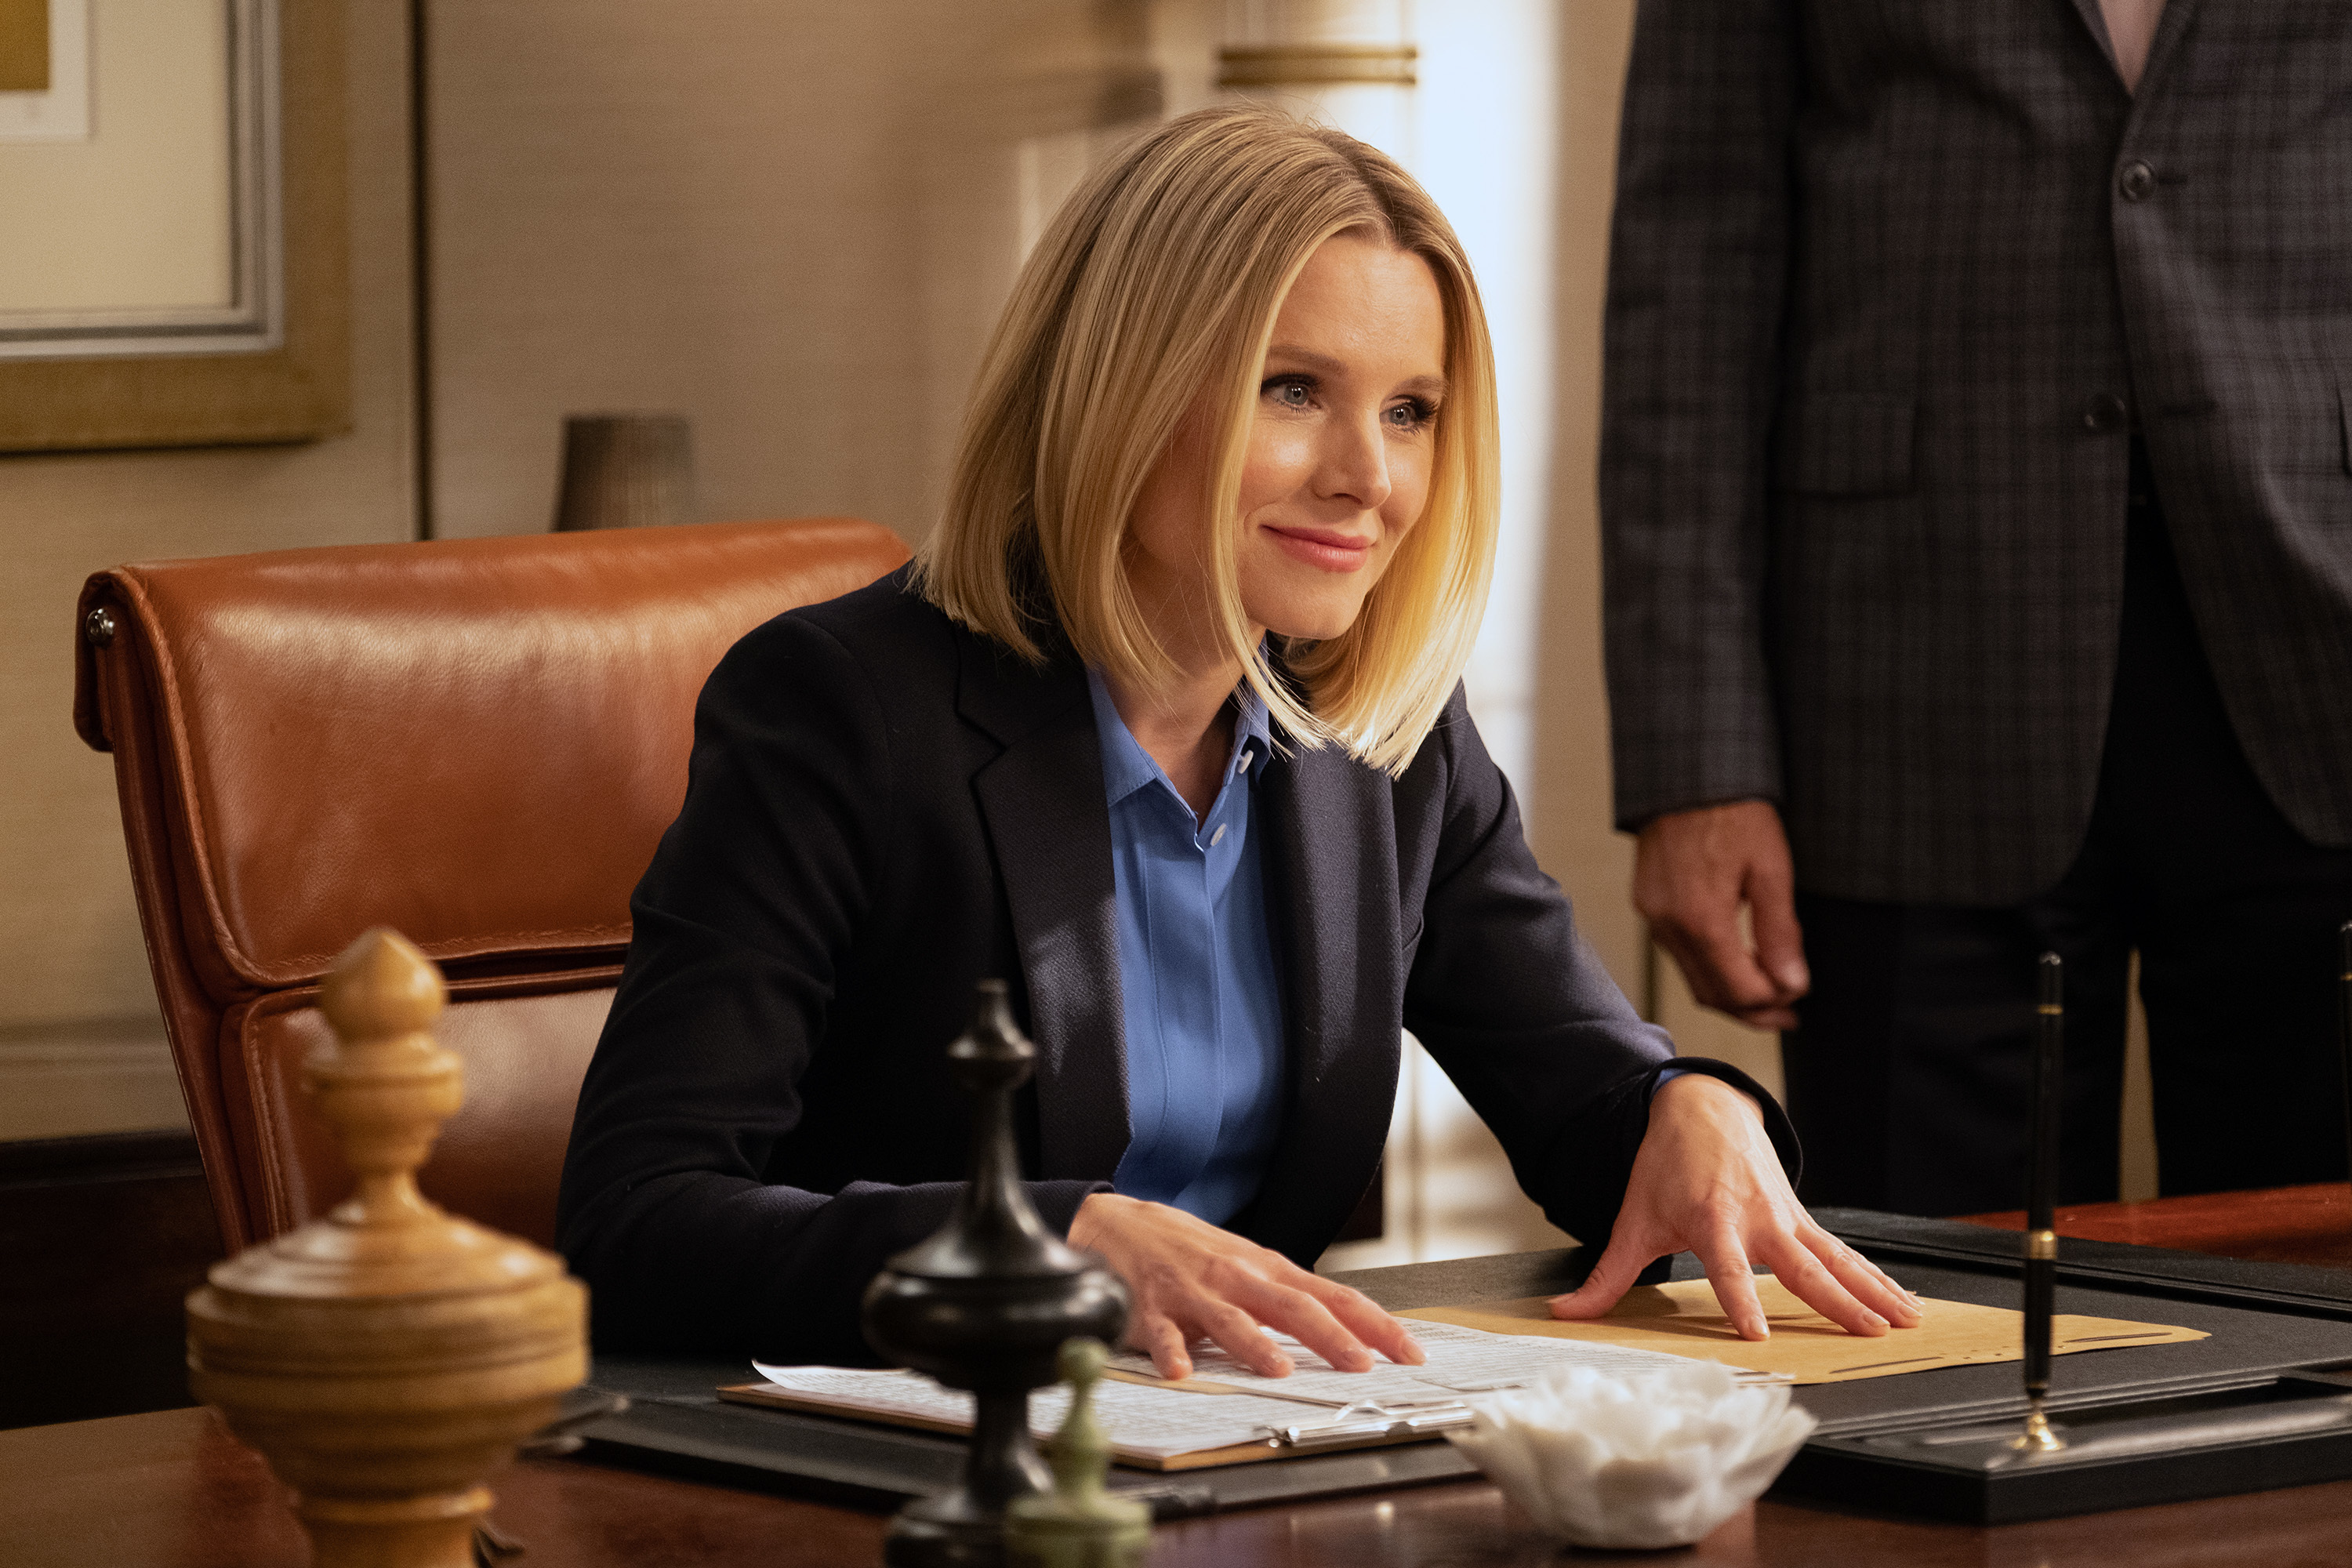 """Kristen Bell as Eleanor in """"The Good Place"""" sits at a desk and smiles."""